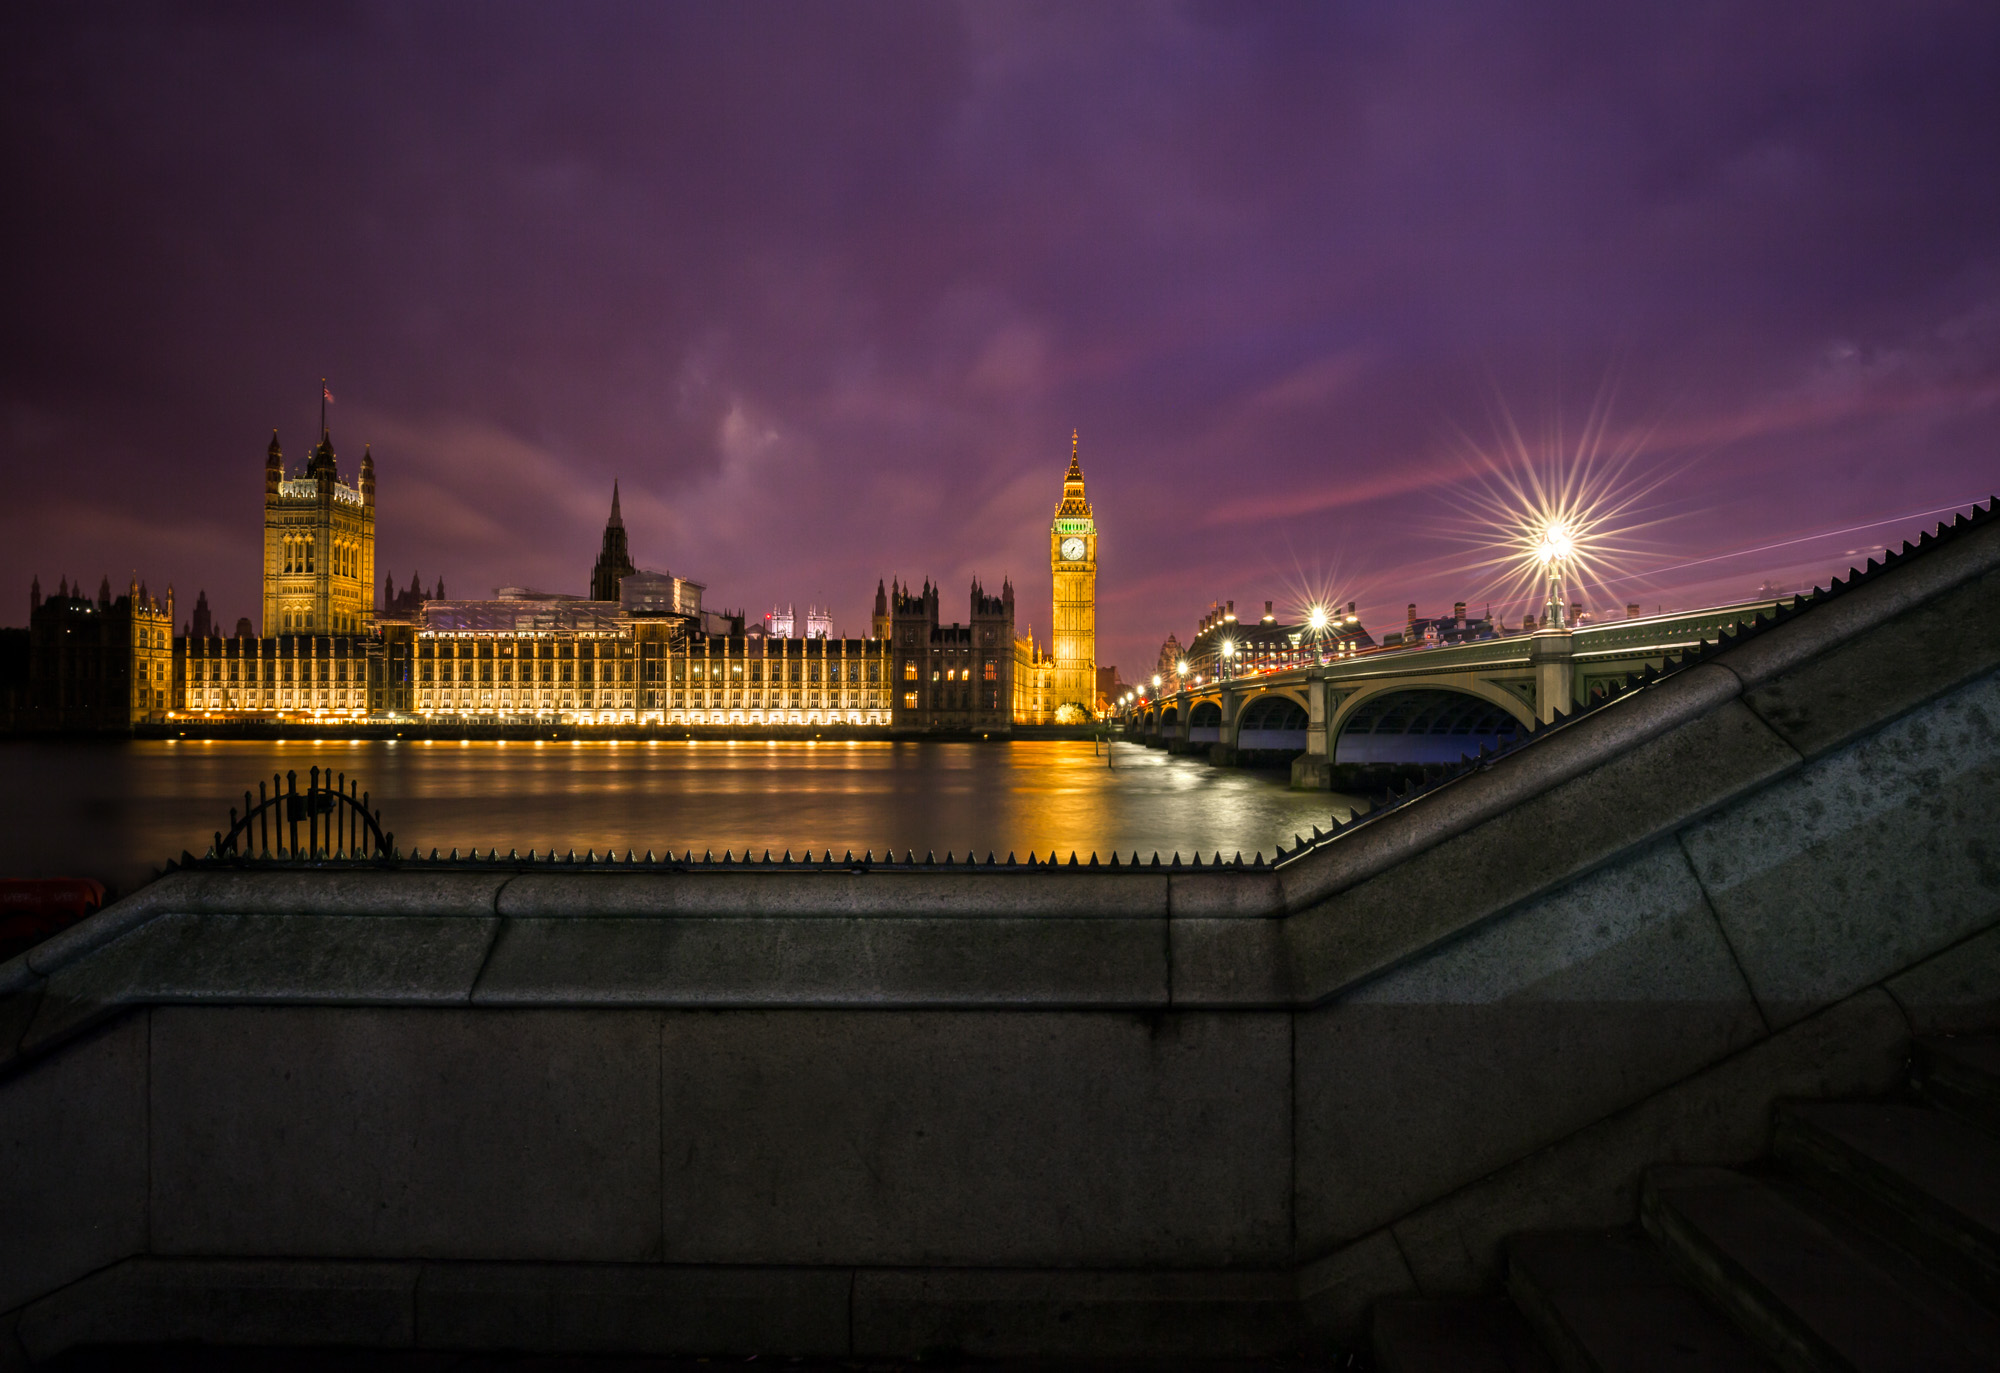 long exposure night photography of Big Ben Eliabeth Clock tower and parliament Westminster Palace in London UK with Westminster Bridge